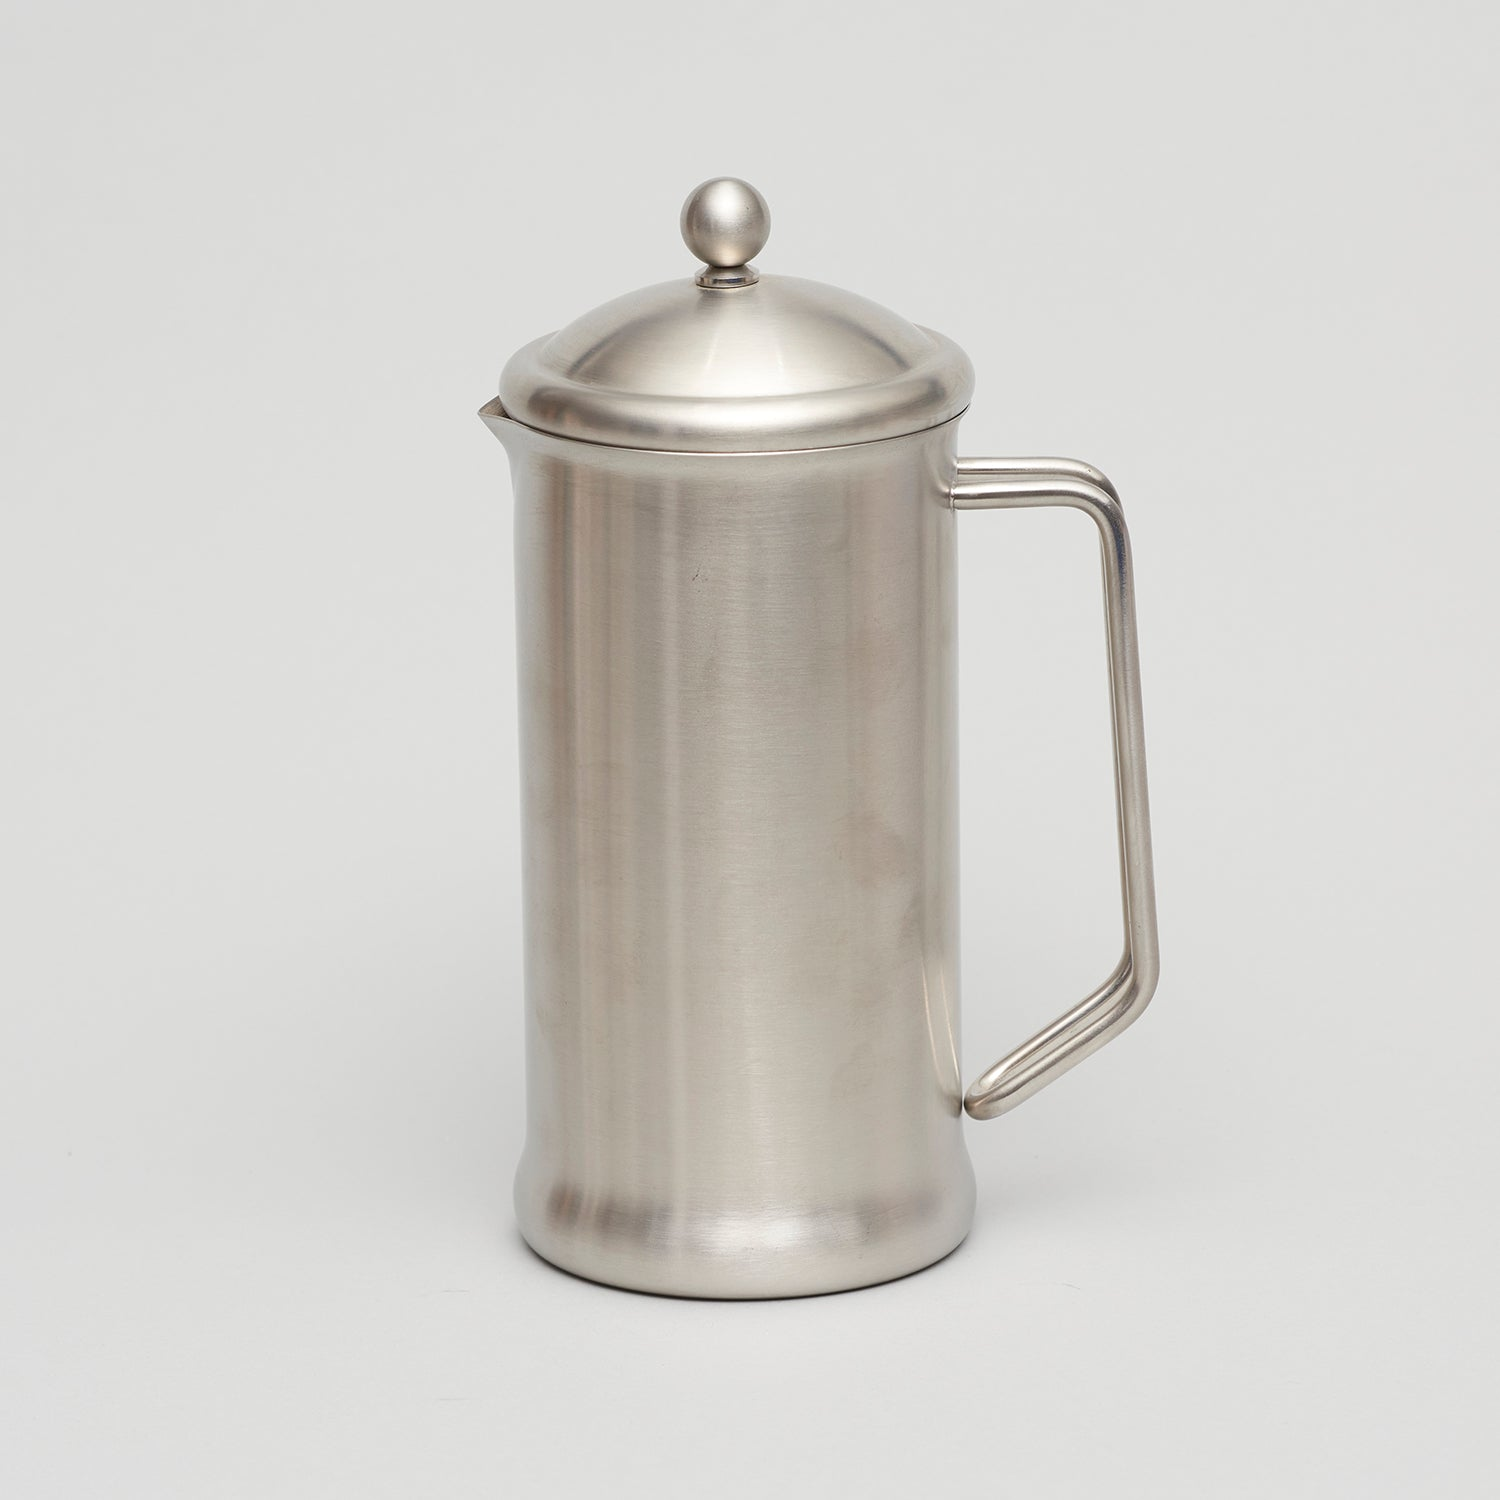 Brushed Stainless Steel Cafetiere